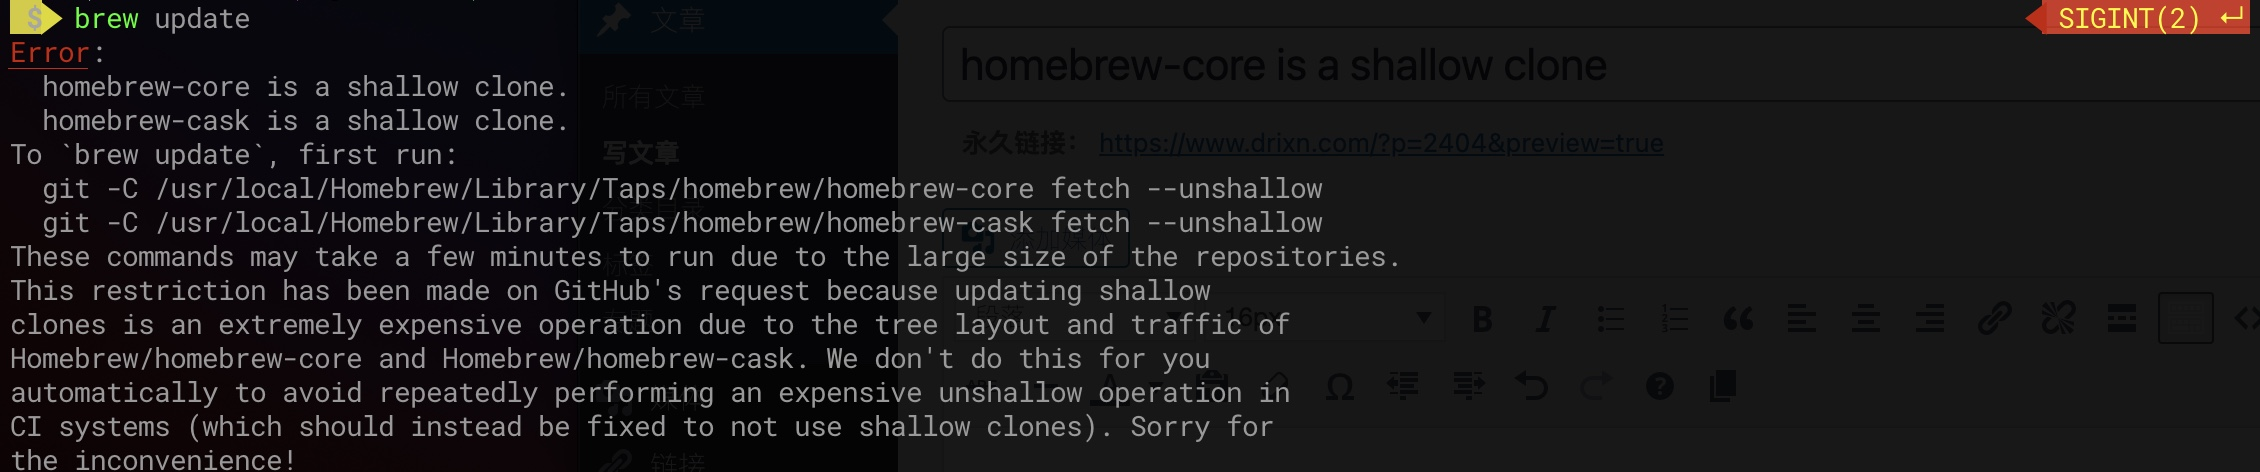 homebrew-core is a shallow clone